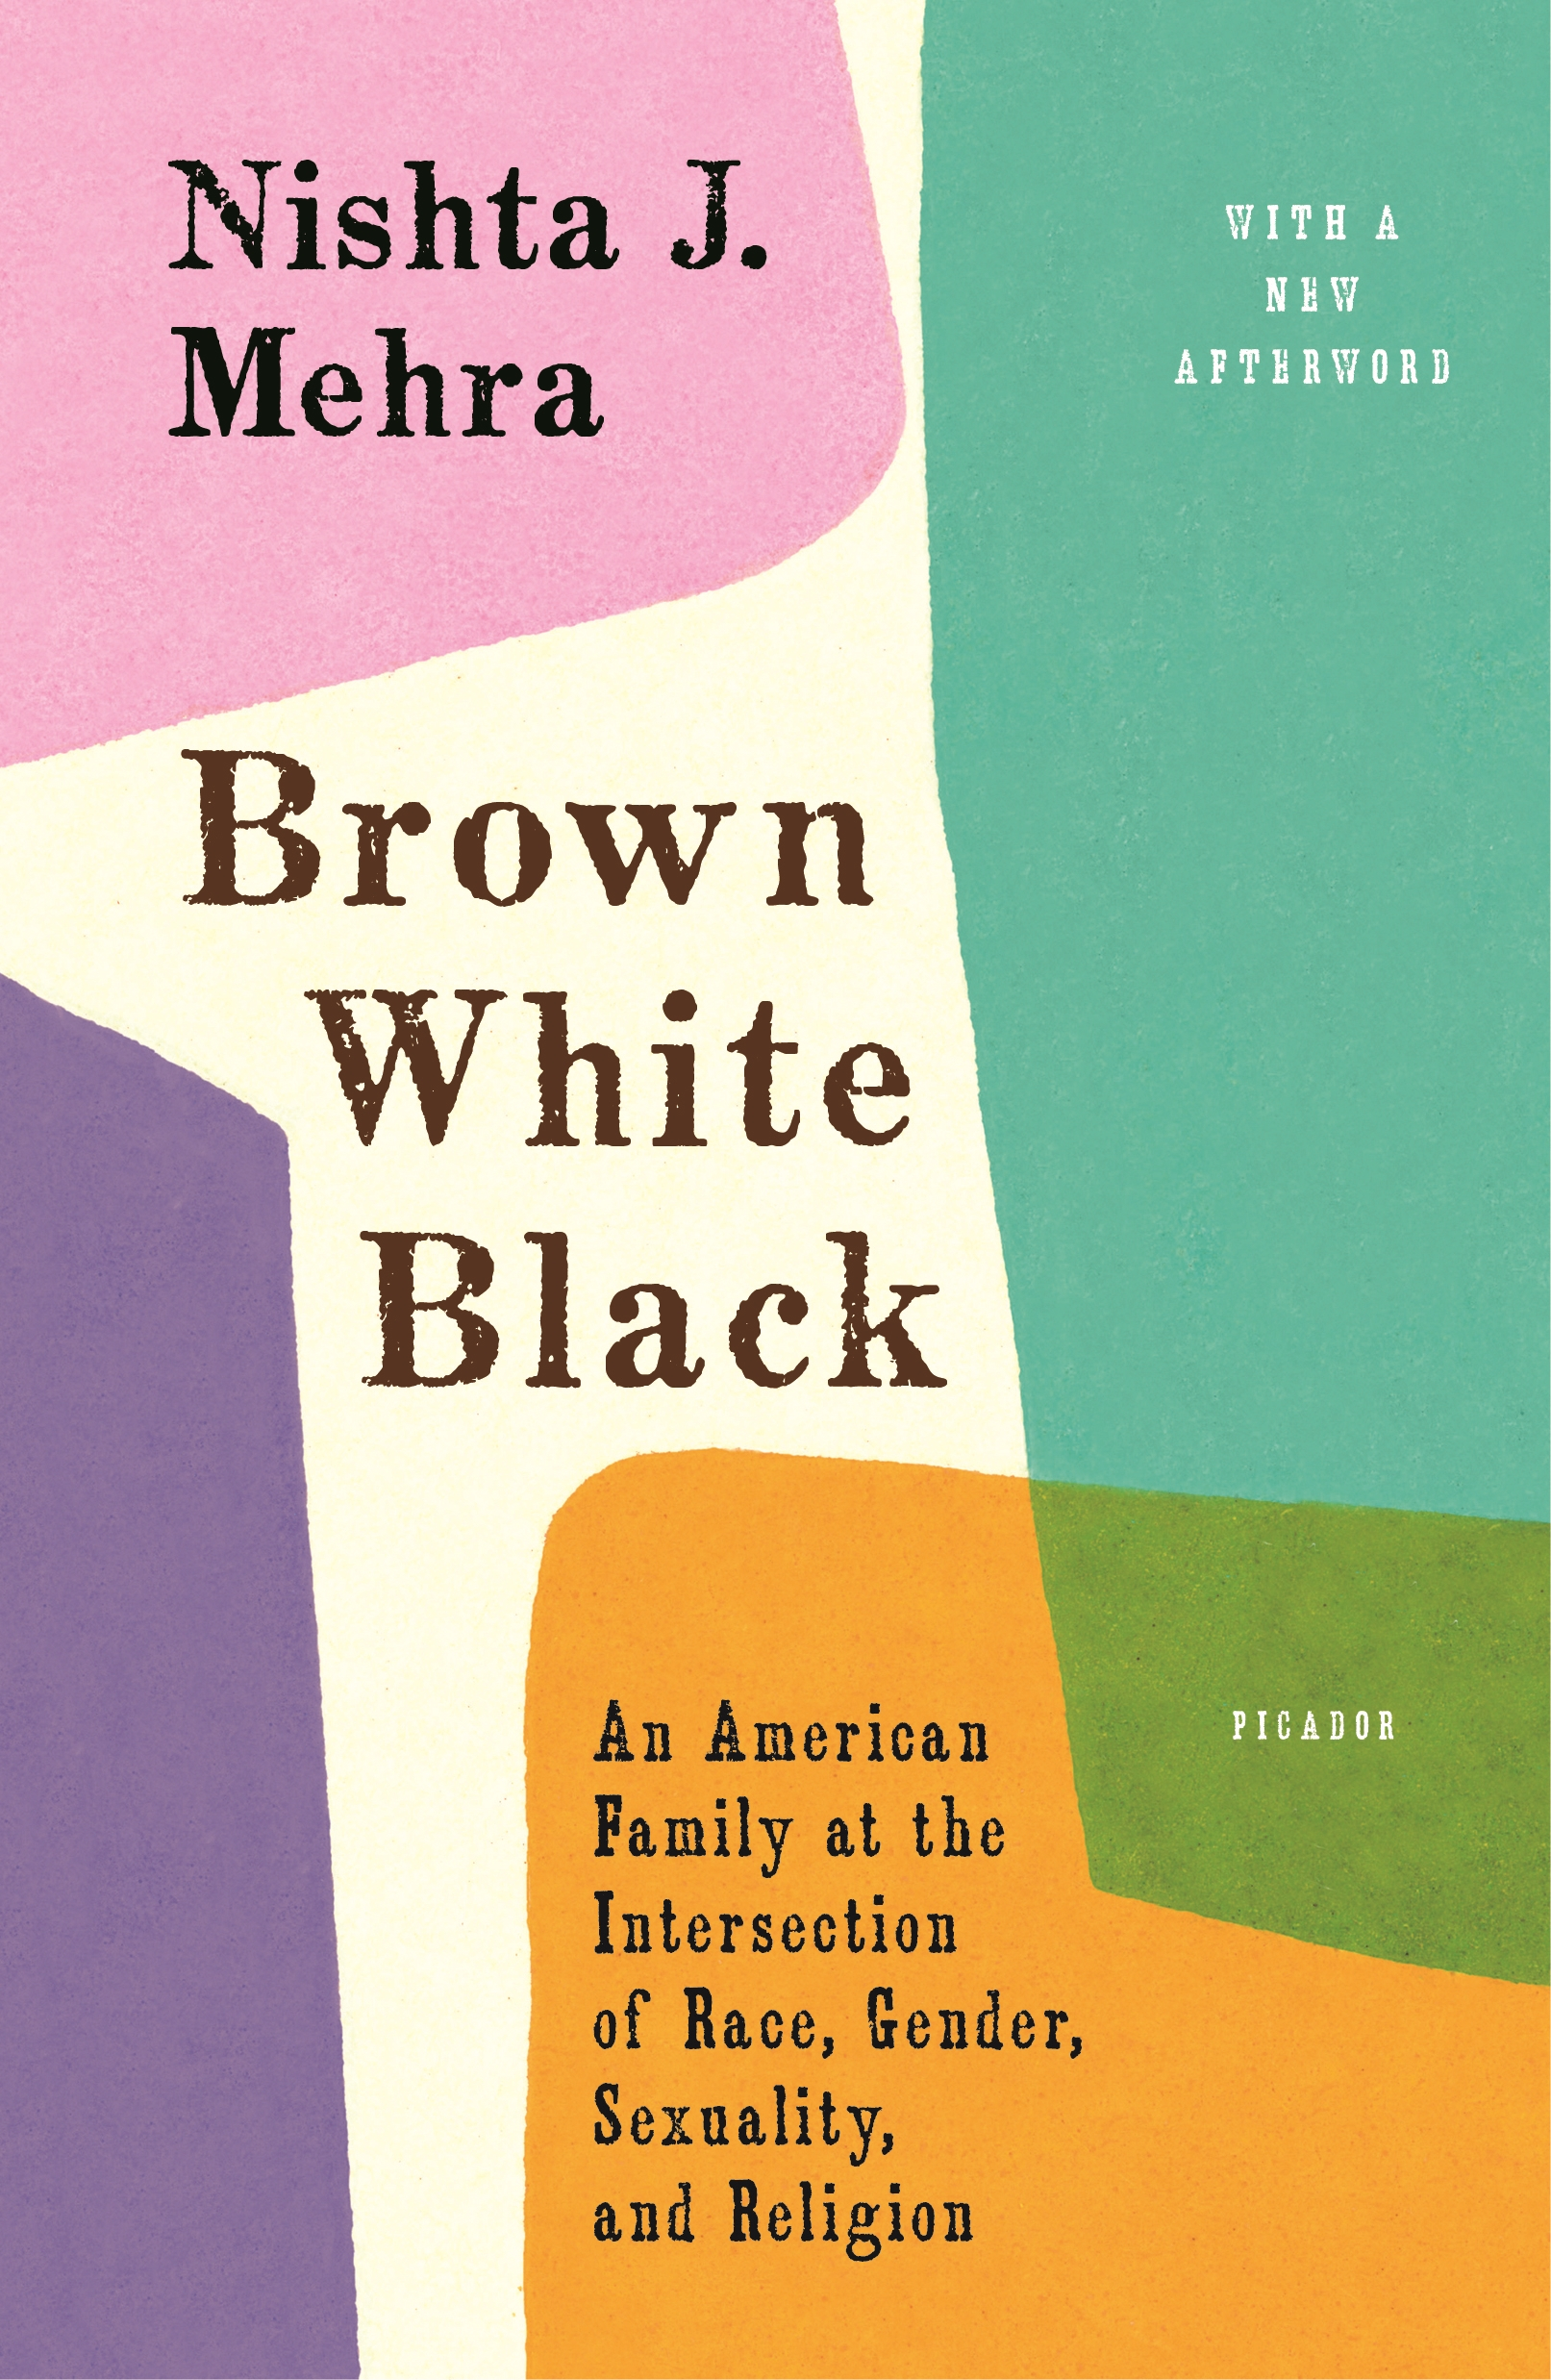 Brown White Black An American Family at the Intersection of Race, Gender, Sexuality, and Religion